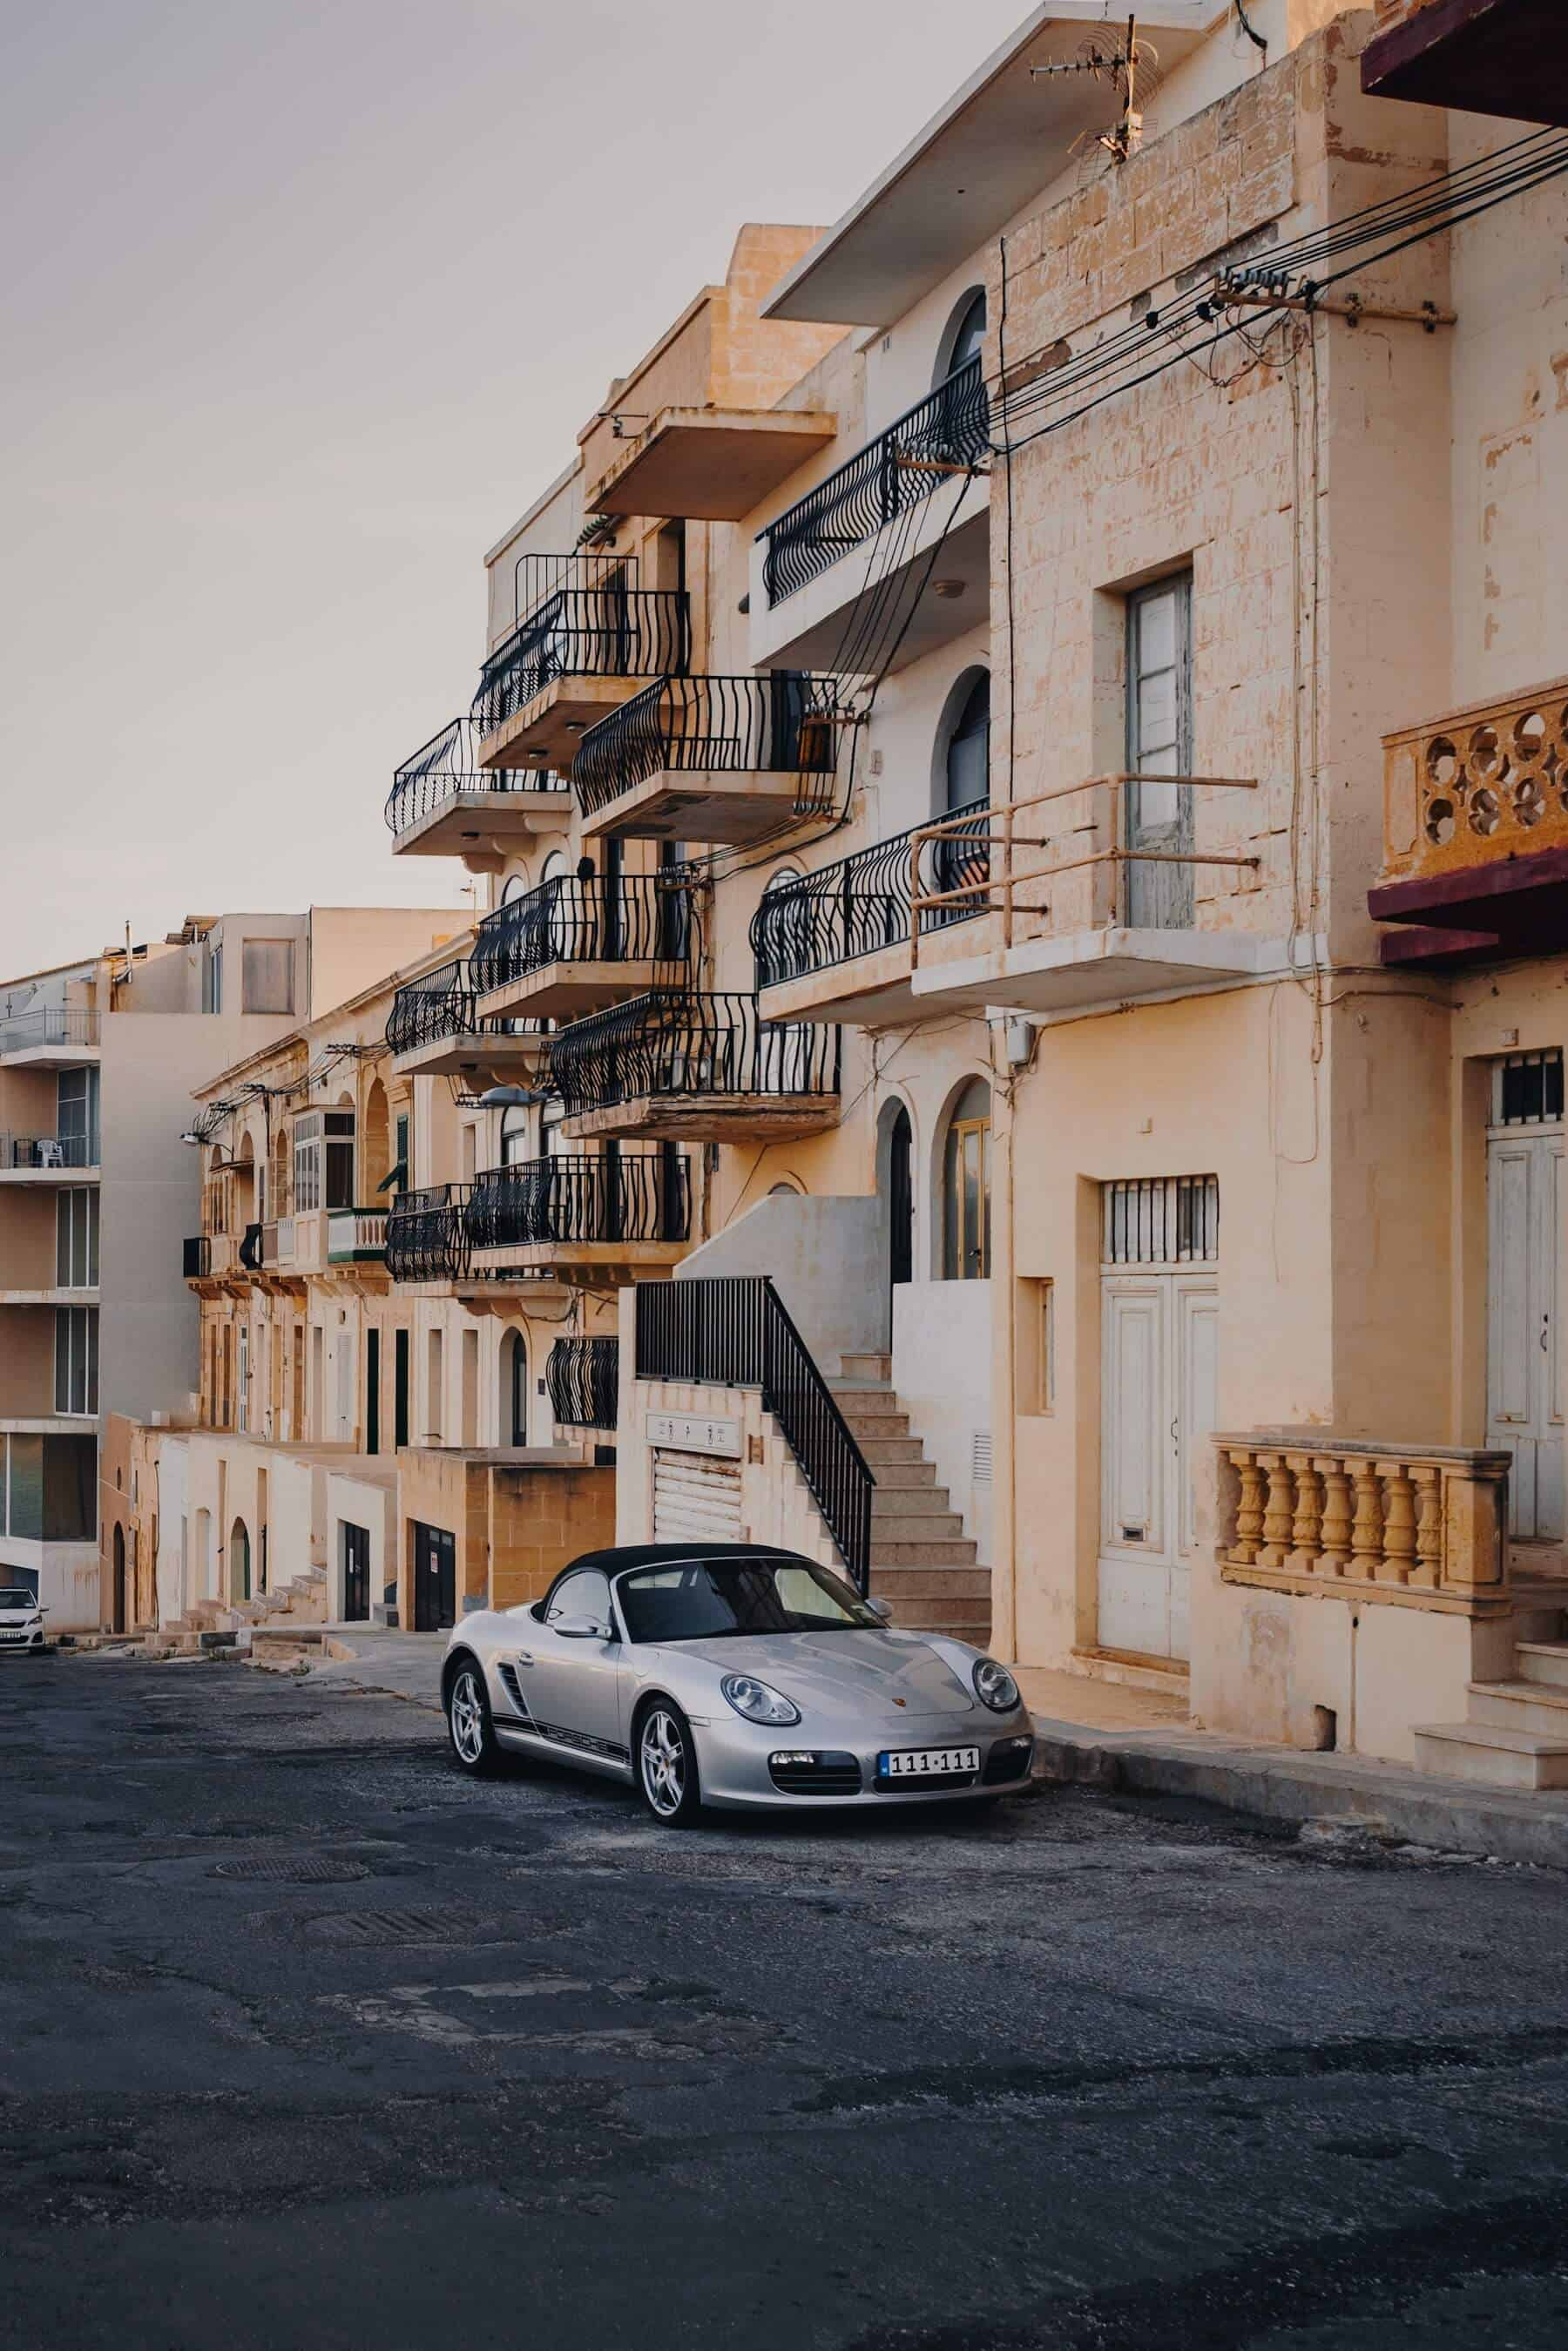 sports car parked in front of a house